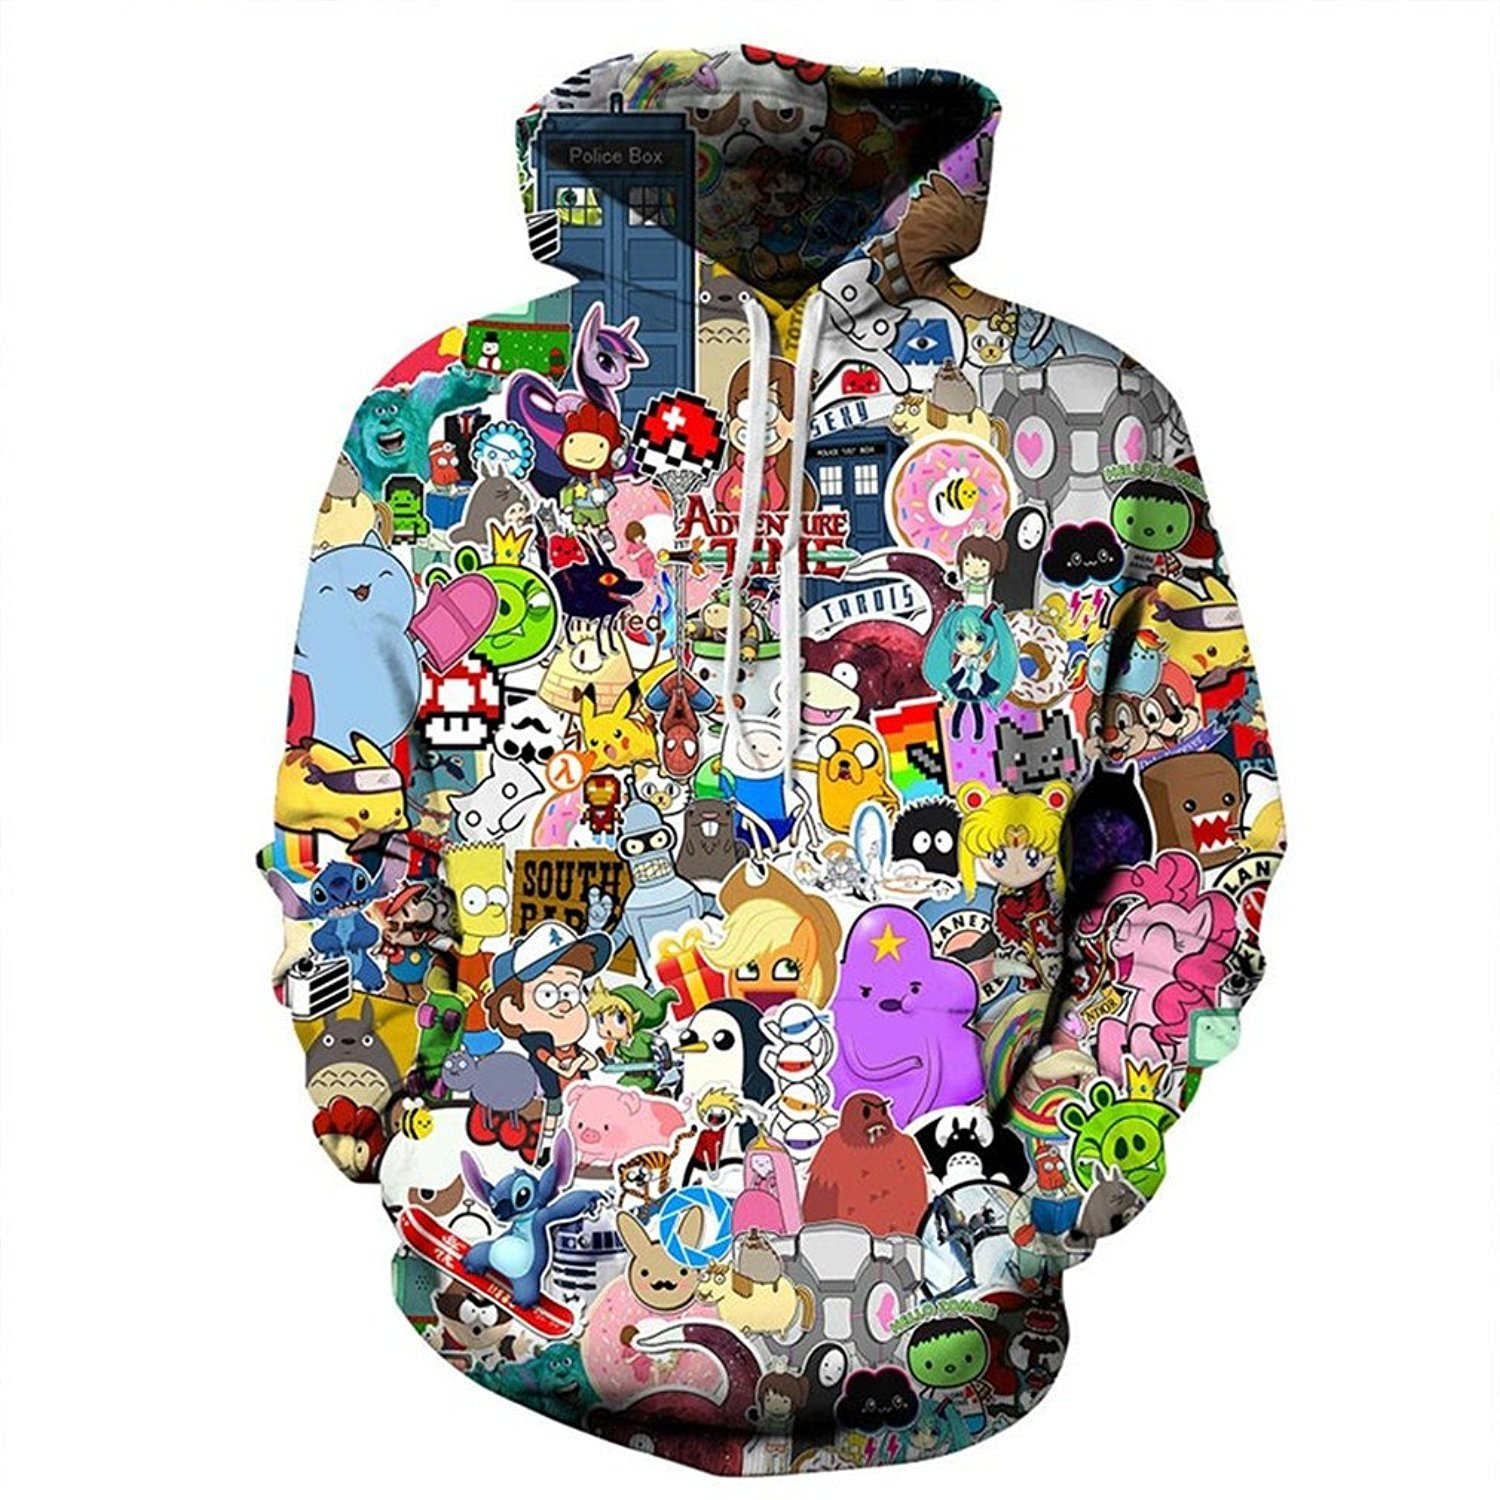 Cheap Anime Hoodies Find Anime Hoodies Deals On Line At Alibaba Com